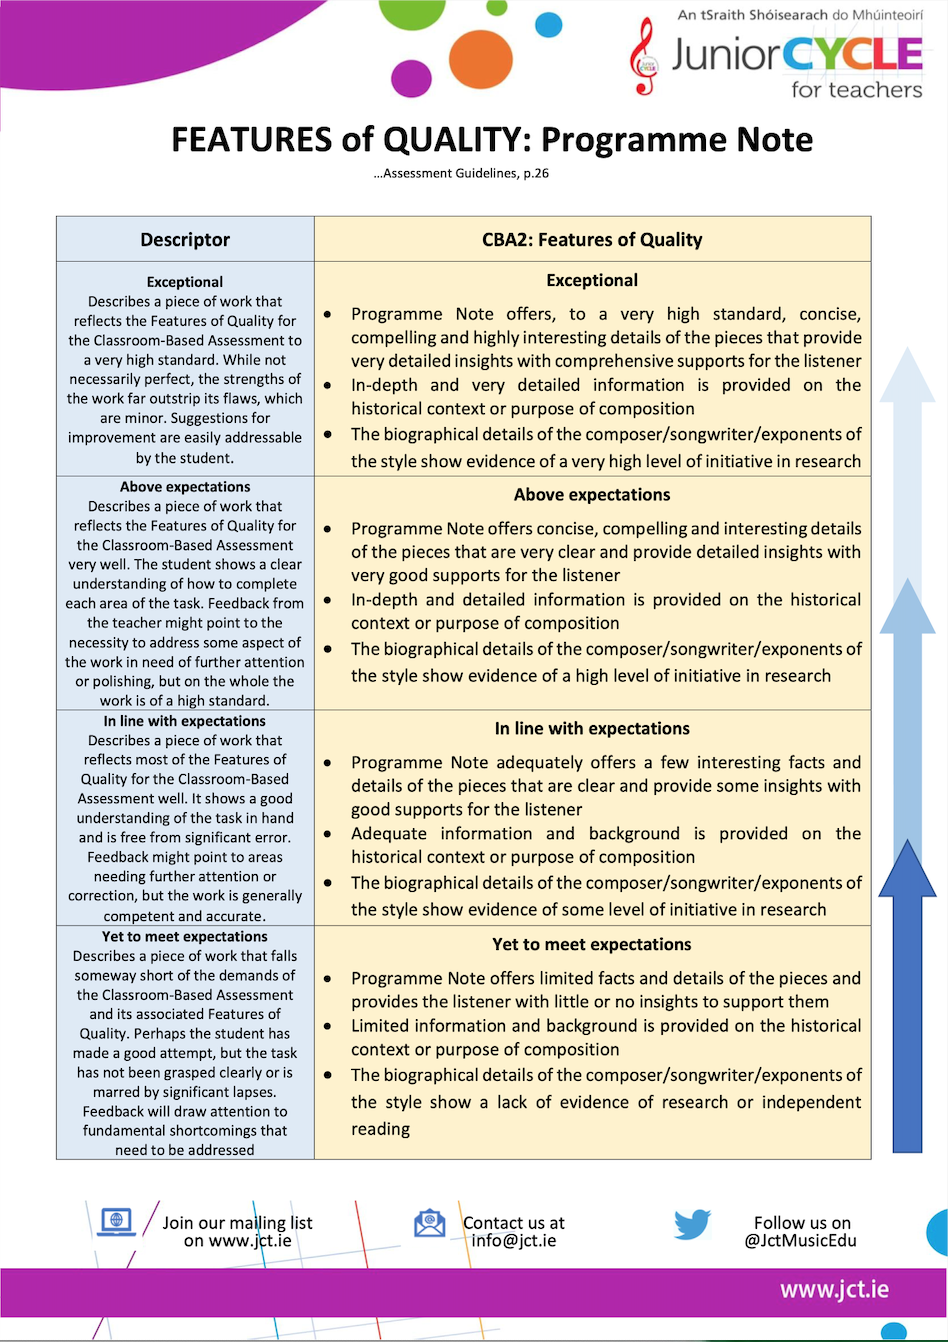 CBA2: Programme Note - Features of Quality